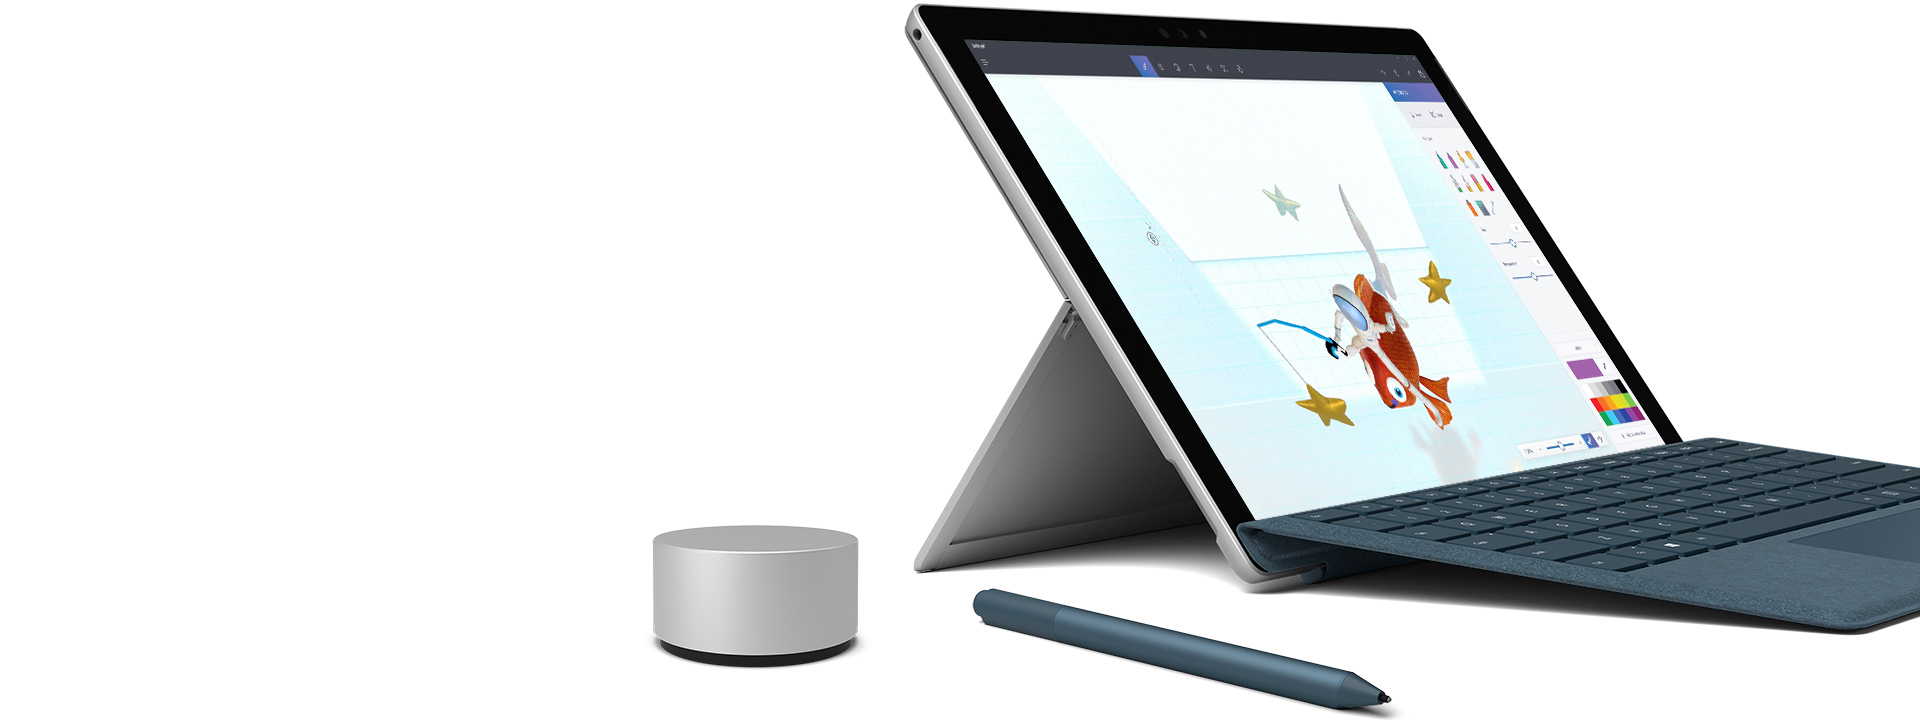 Surface Pro in Laptop Mode with Surface Dial, Pen and Type Cover.